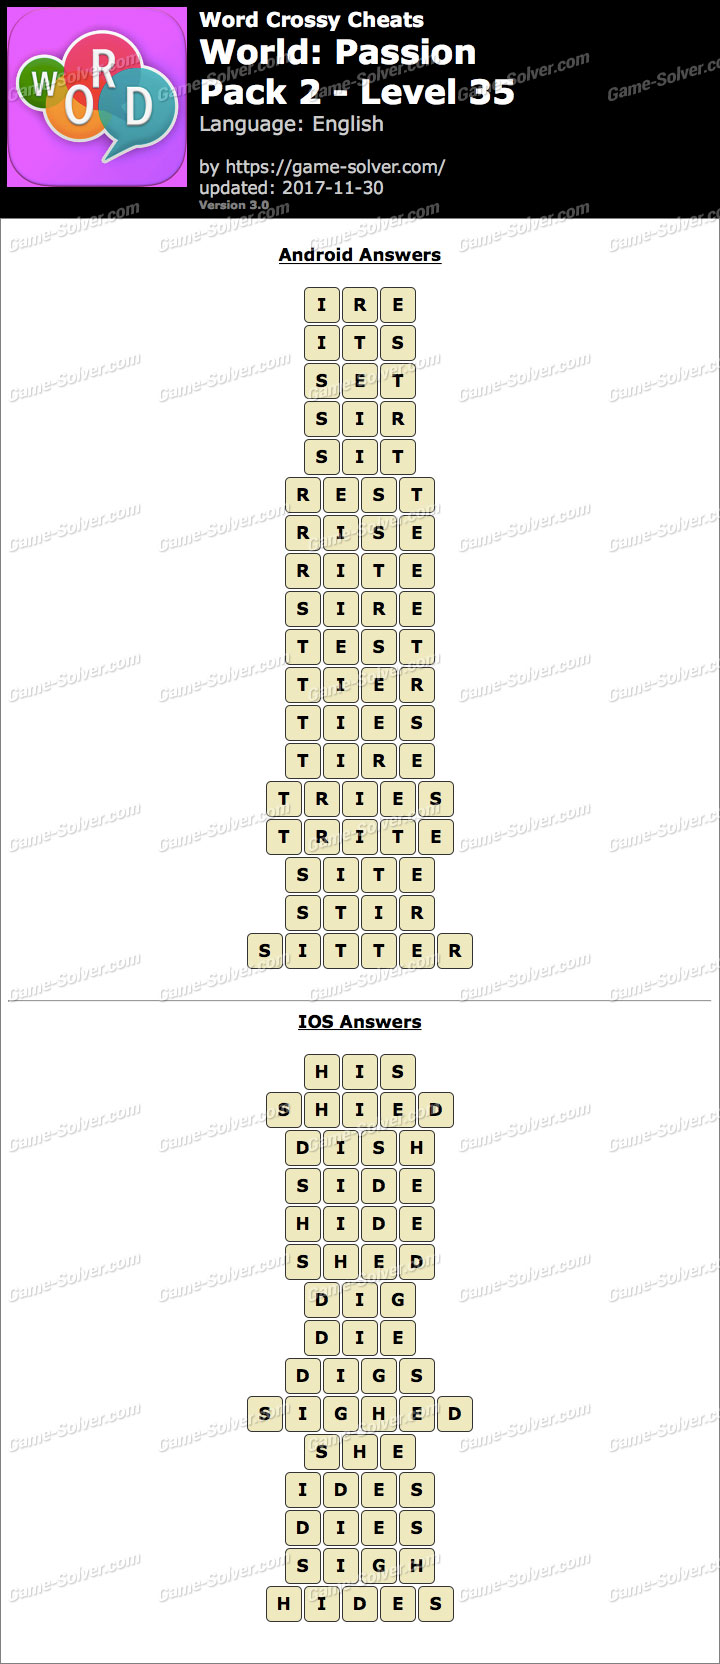 Word Crossy Passion Pack 2 Level 35 Answers